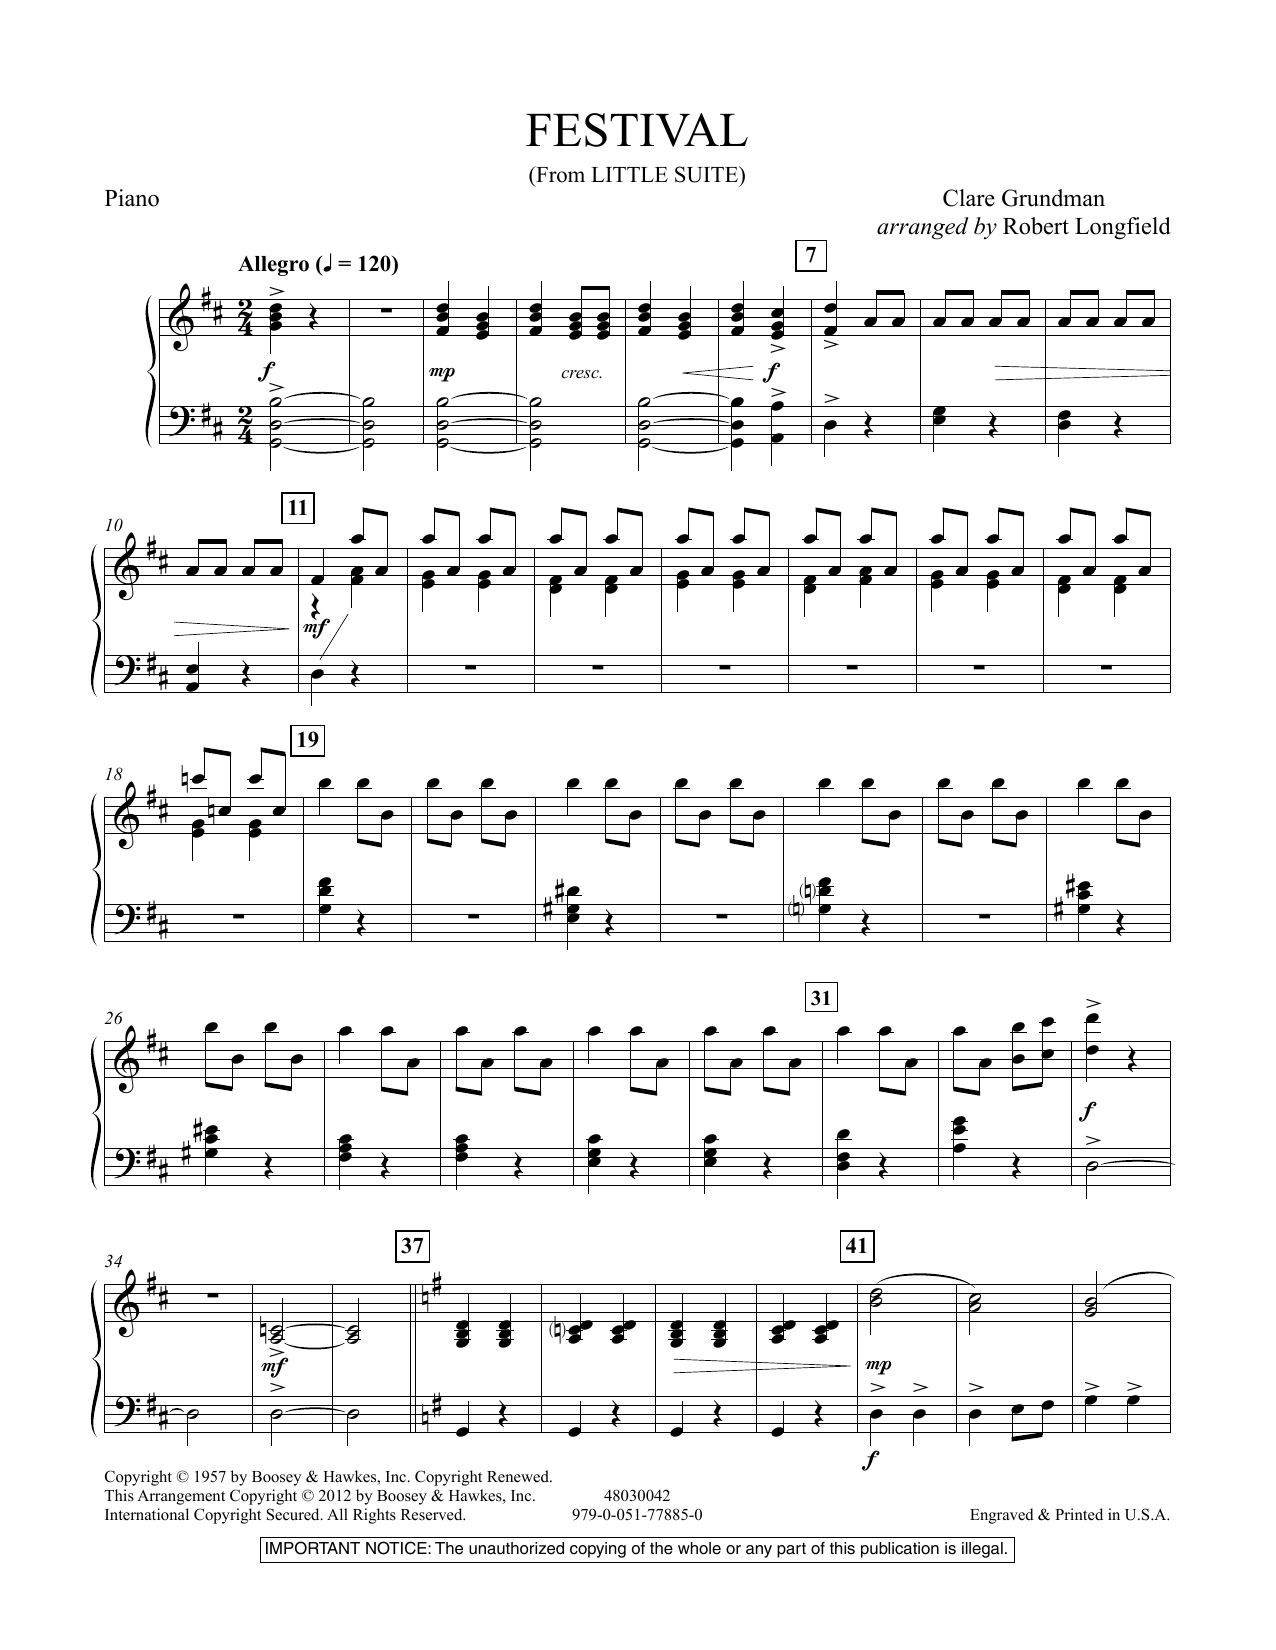 Festival (from Little Suite) - Piano Sheet Music